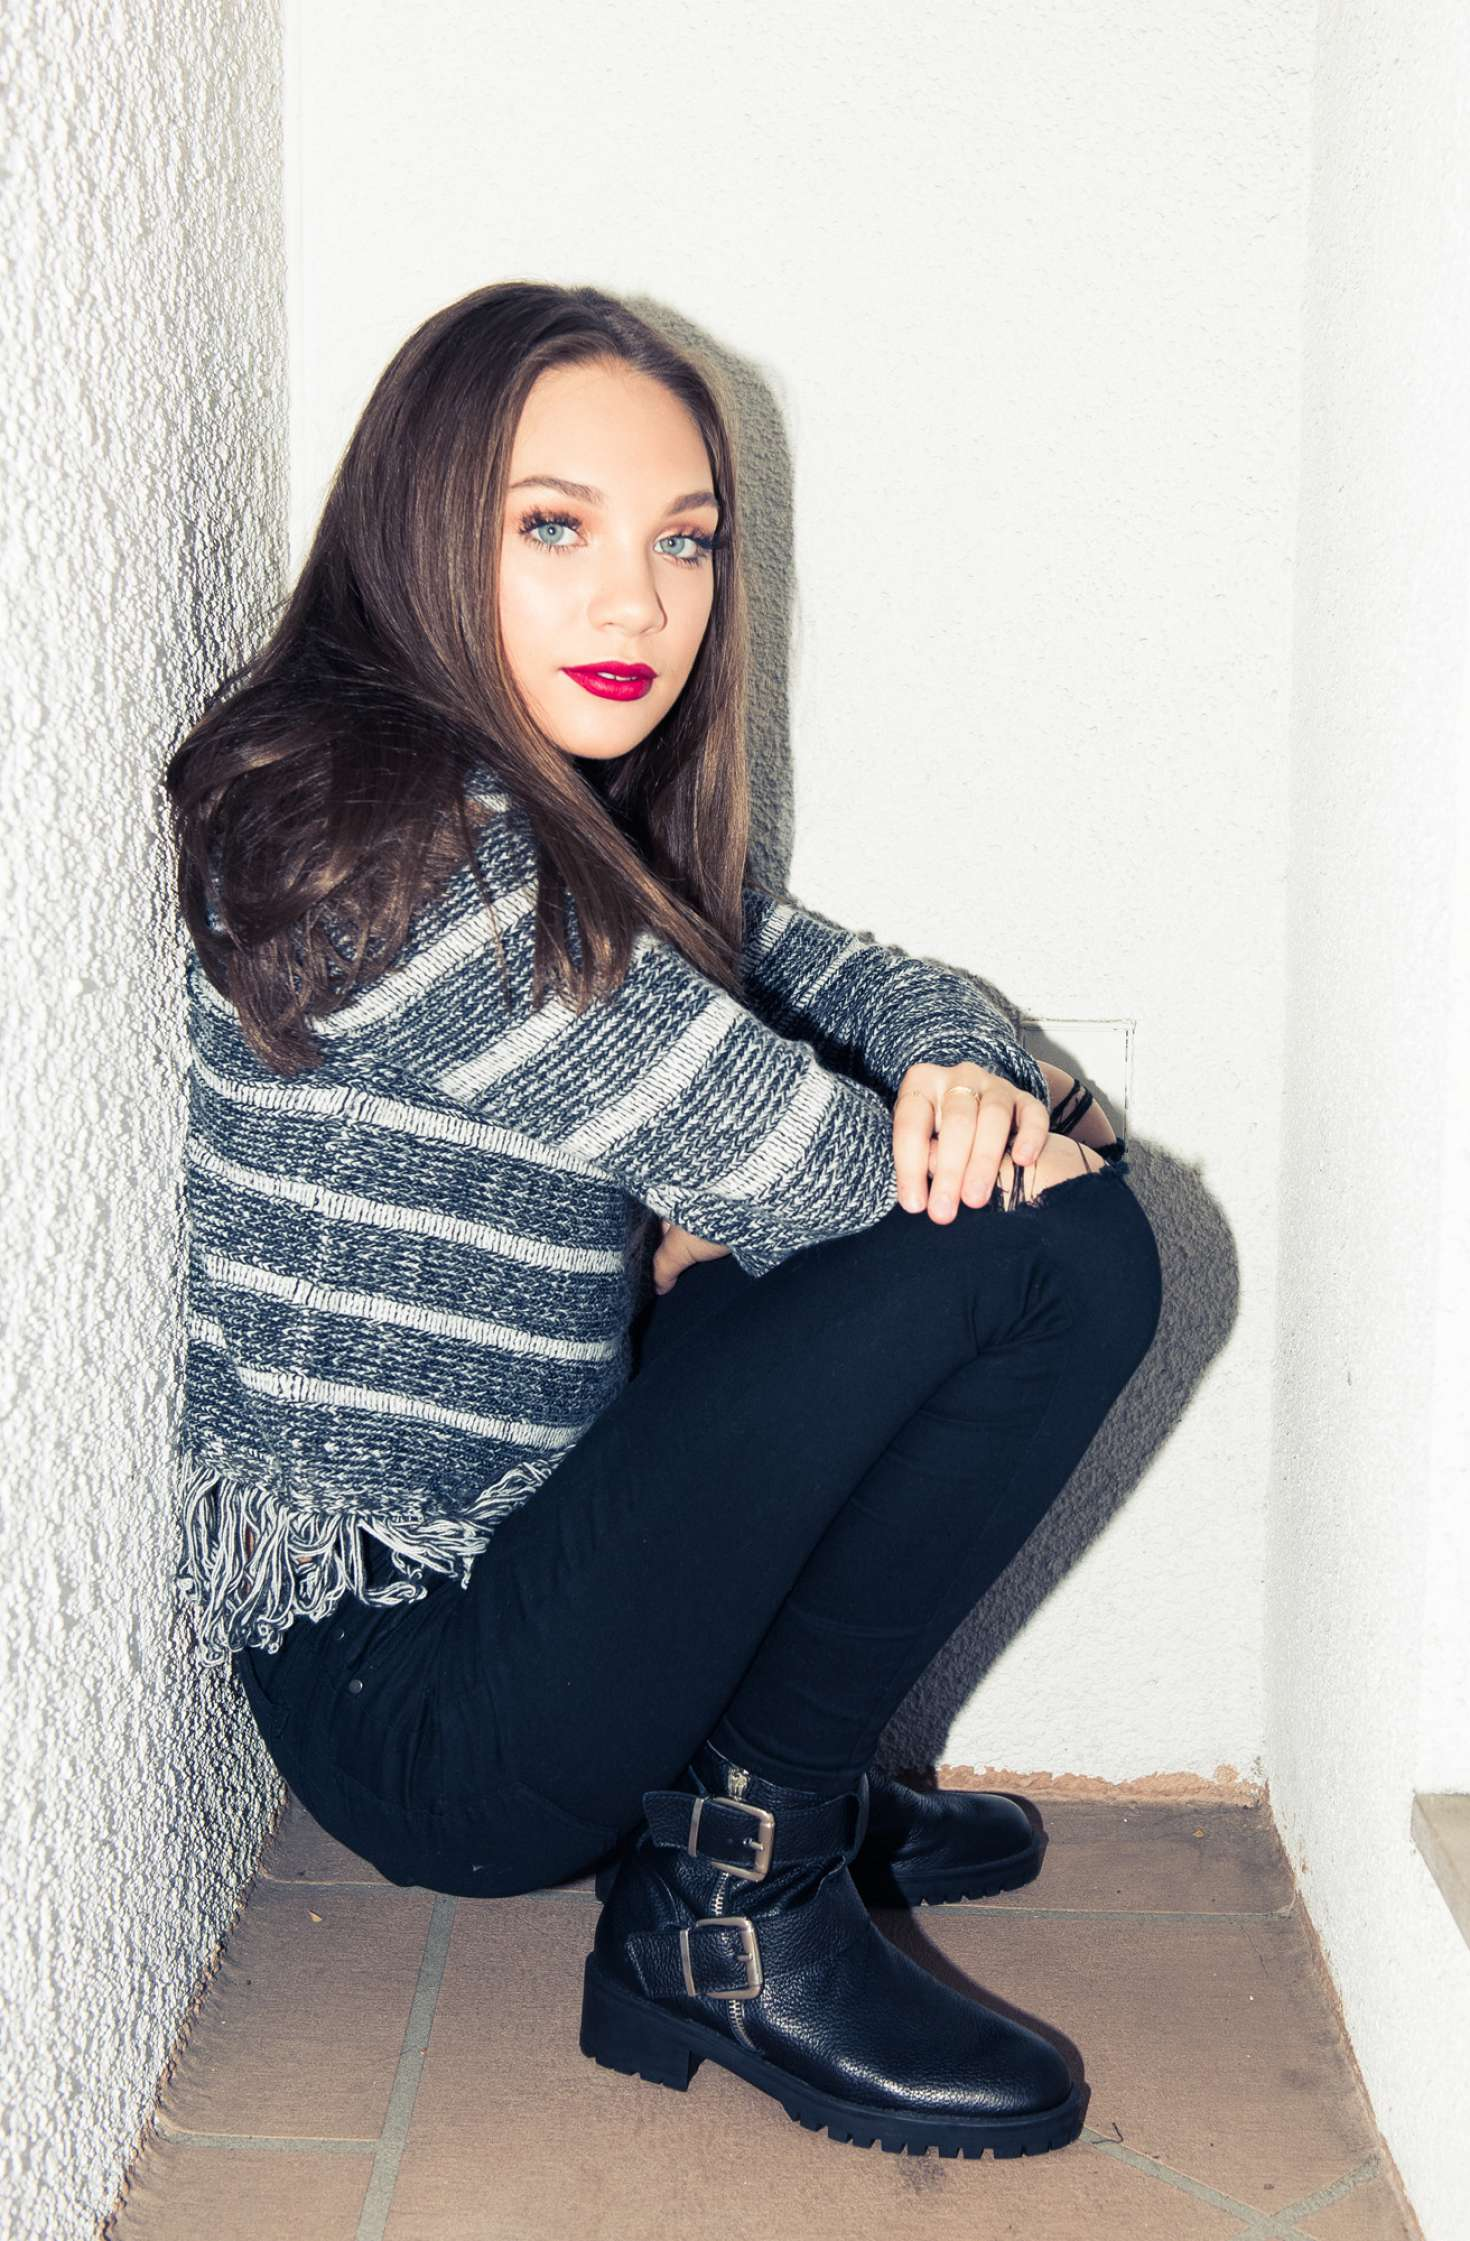 Maddie Ziegler by Jake Rosenberg The Coveteur Shot